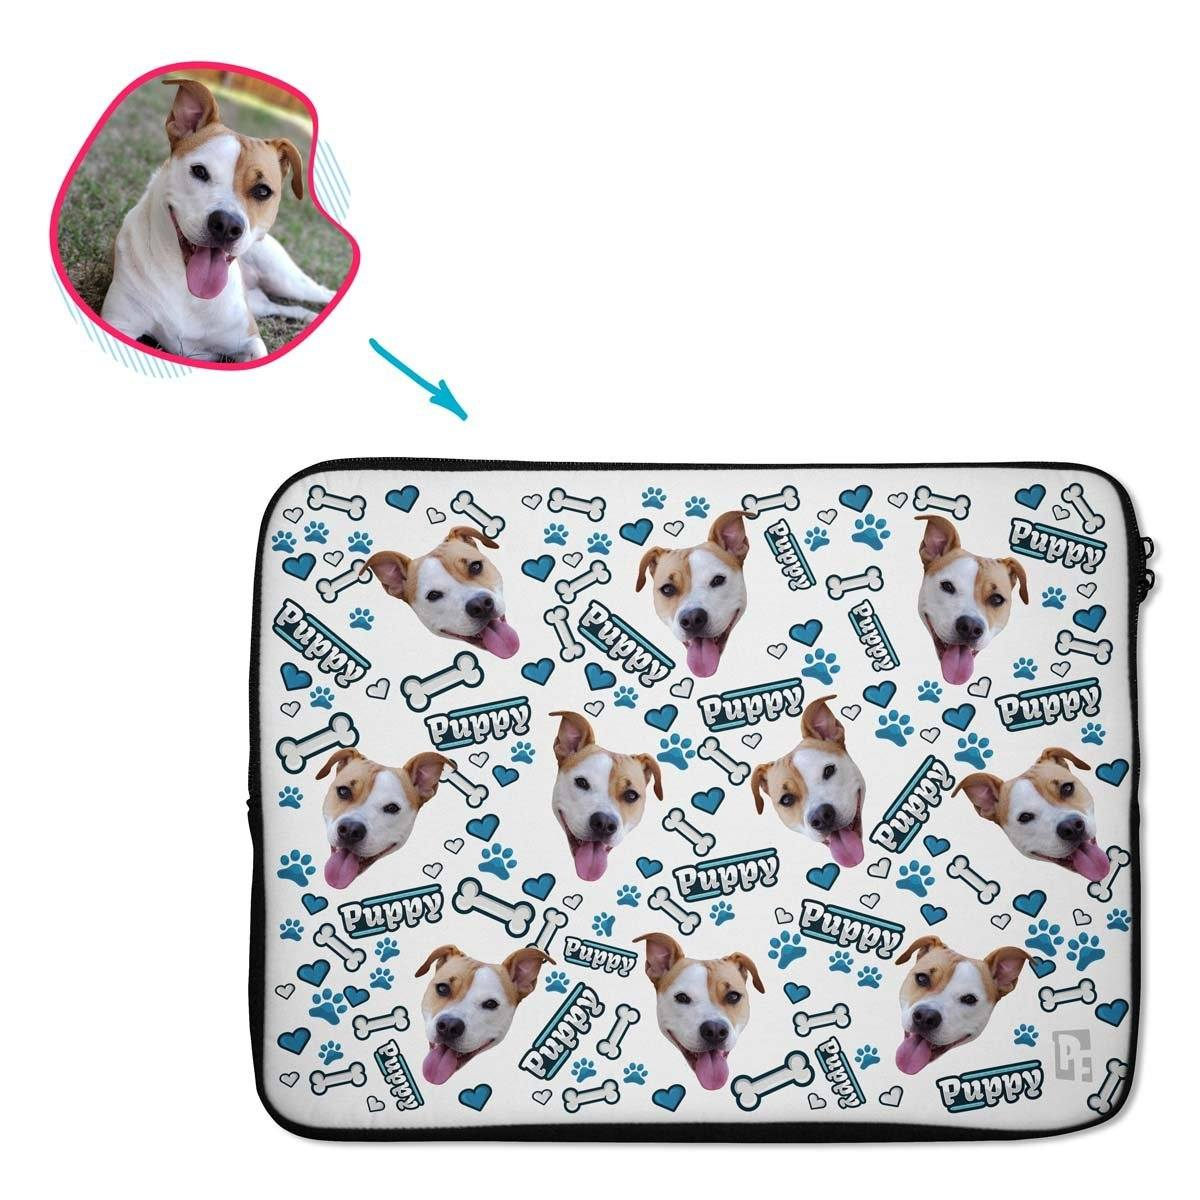 white Puppy laptop sleeve personalized with photo of face printed on them